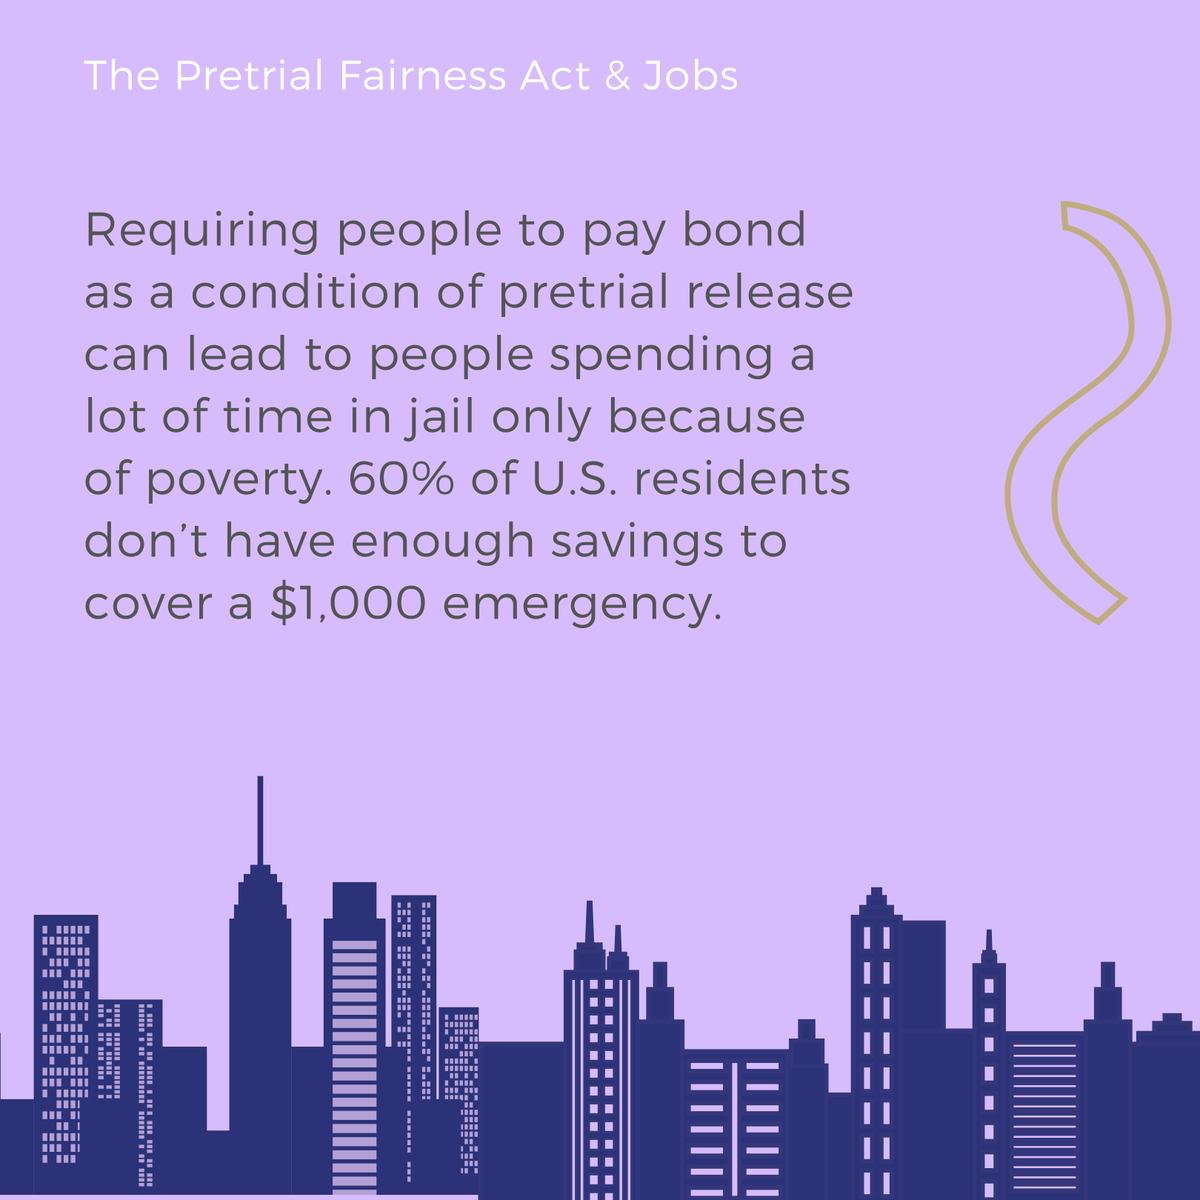 Just 72 hours in jail makes someone 2.5 times more likely to be unemployed one year later. Wealth-based pretrial incarceration is tearing our communities apart.  Illinois can have #PretrialFairnessNow by passing the Pretrial Fairness Act today! | #Twill